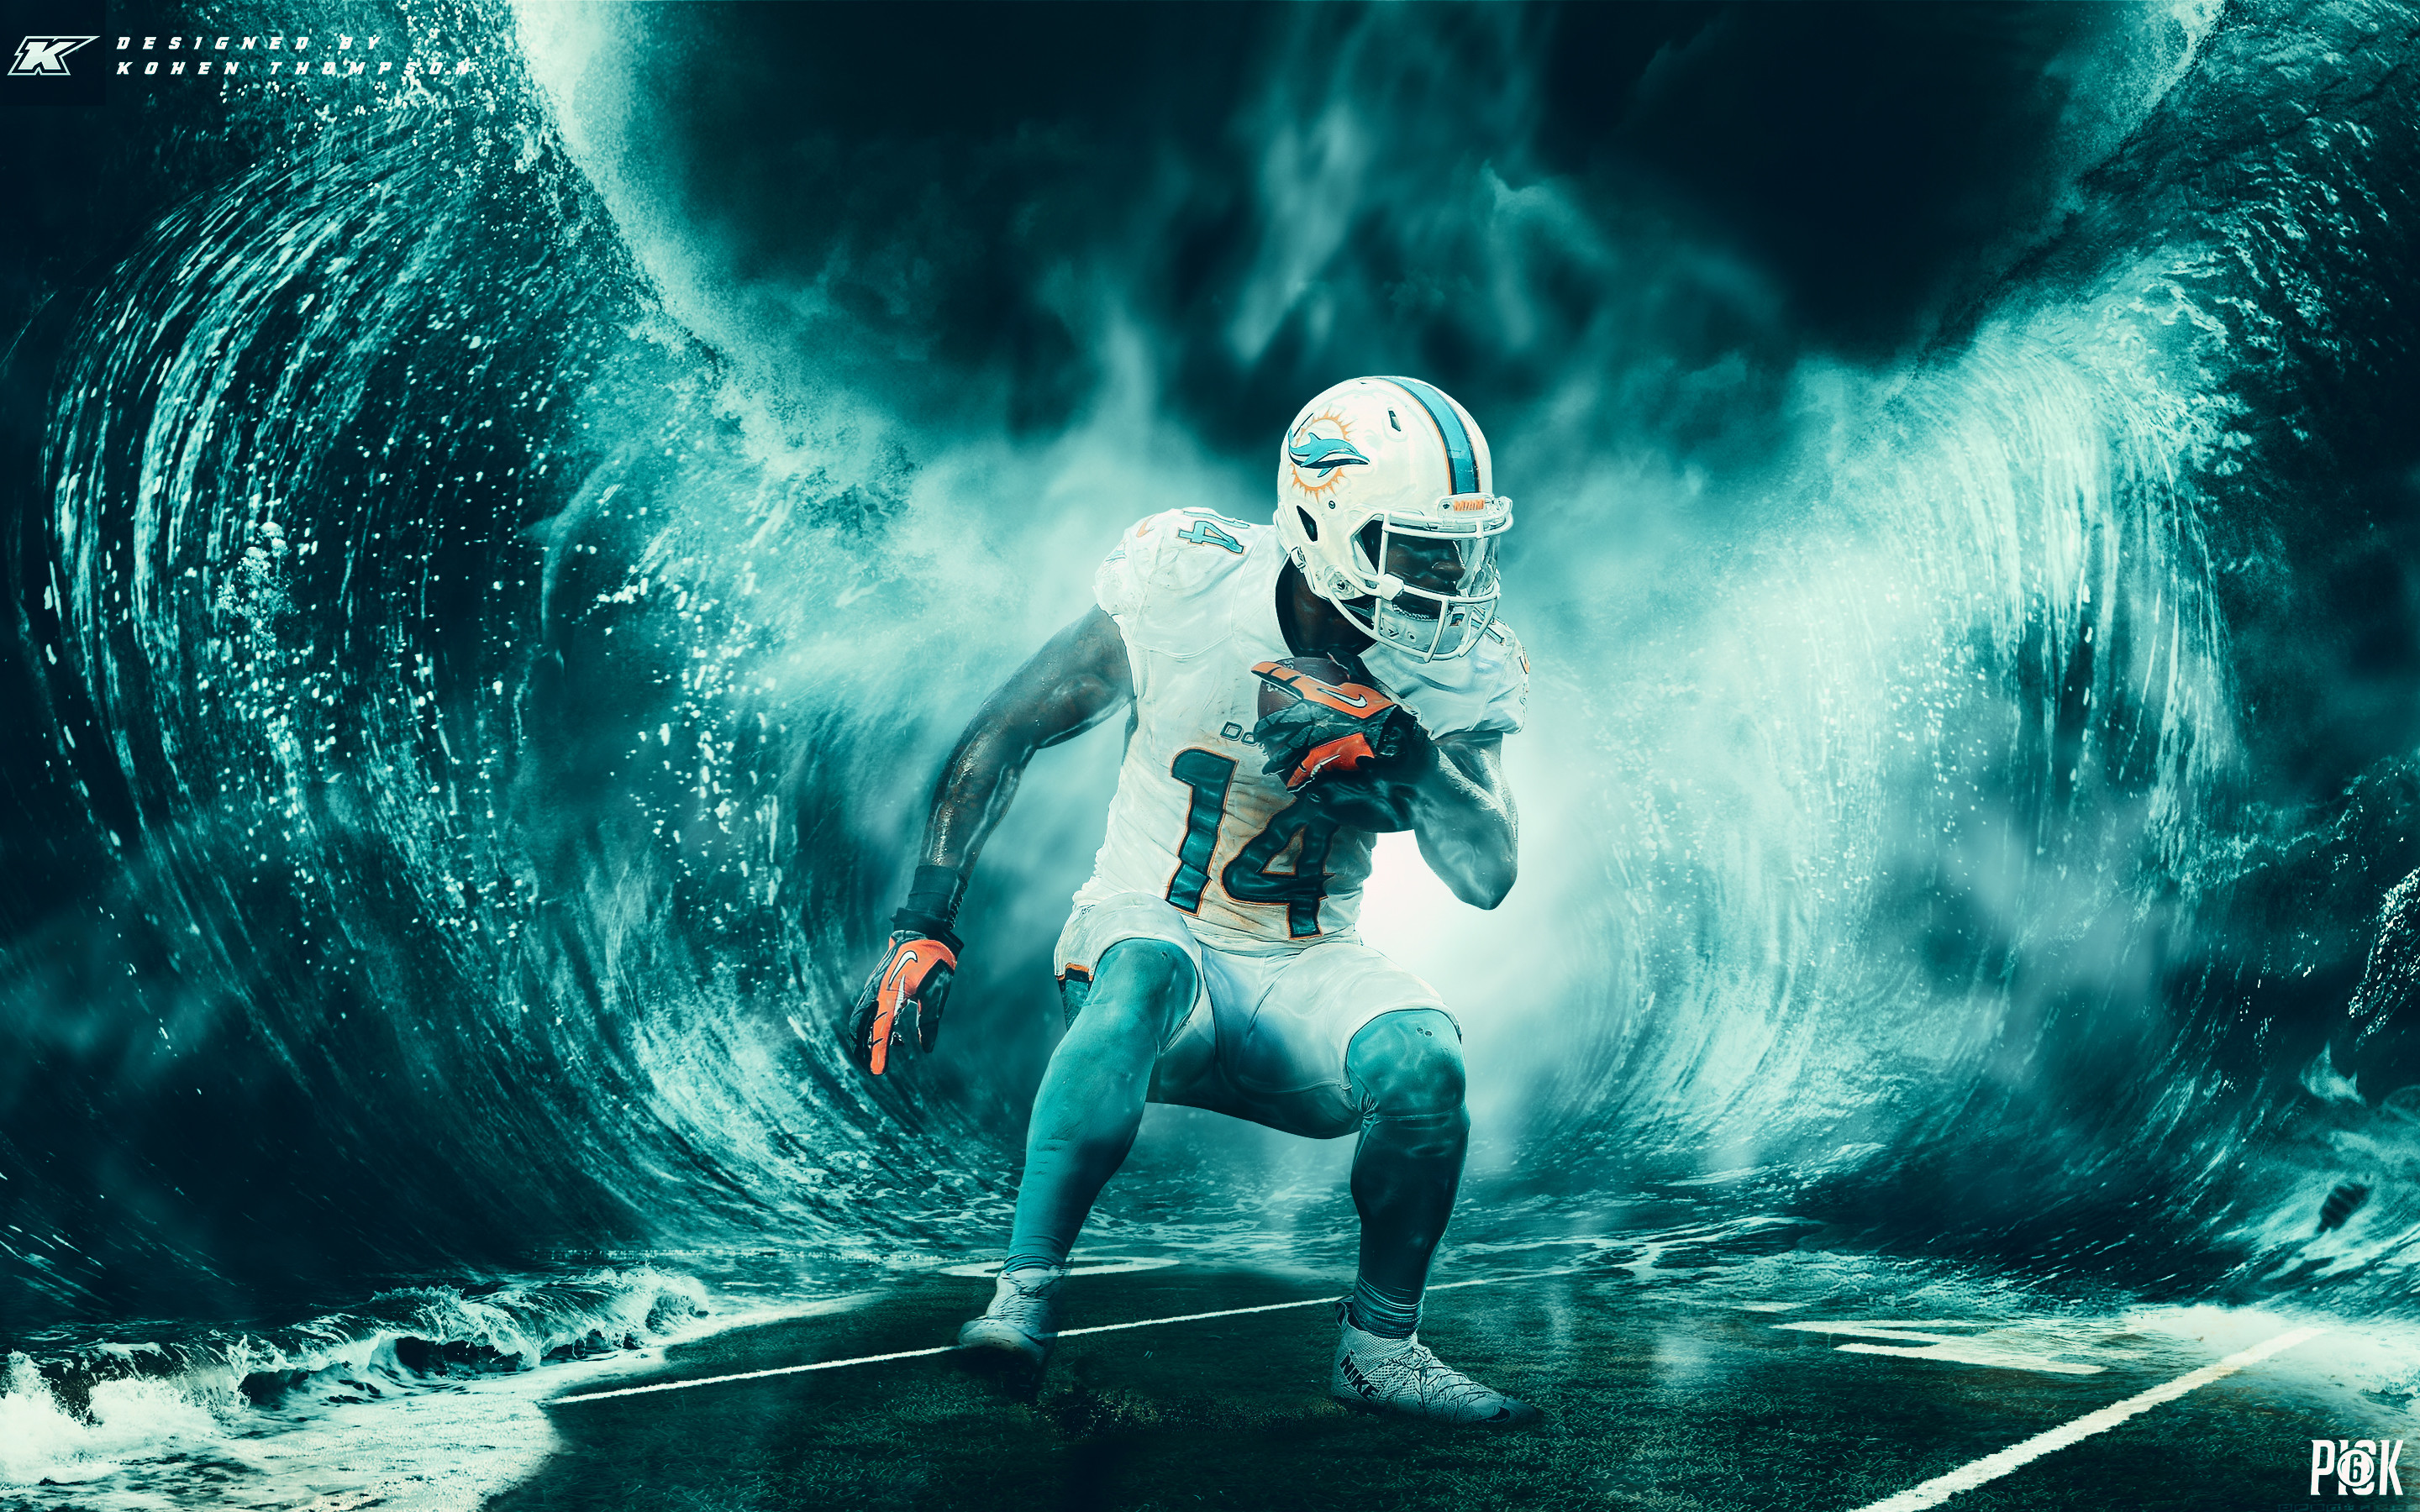 Jarvis landry wallpapers 60 pictures - Jarvis hd wallpaper for pc ...